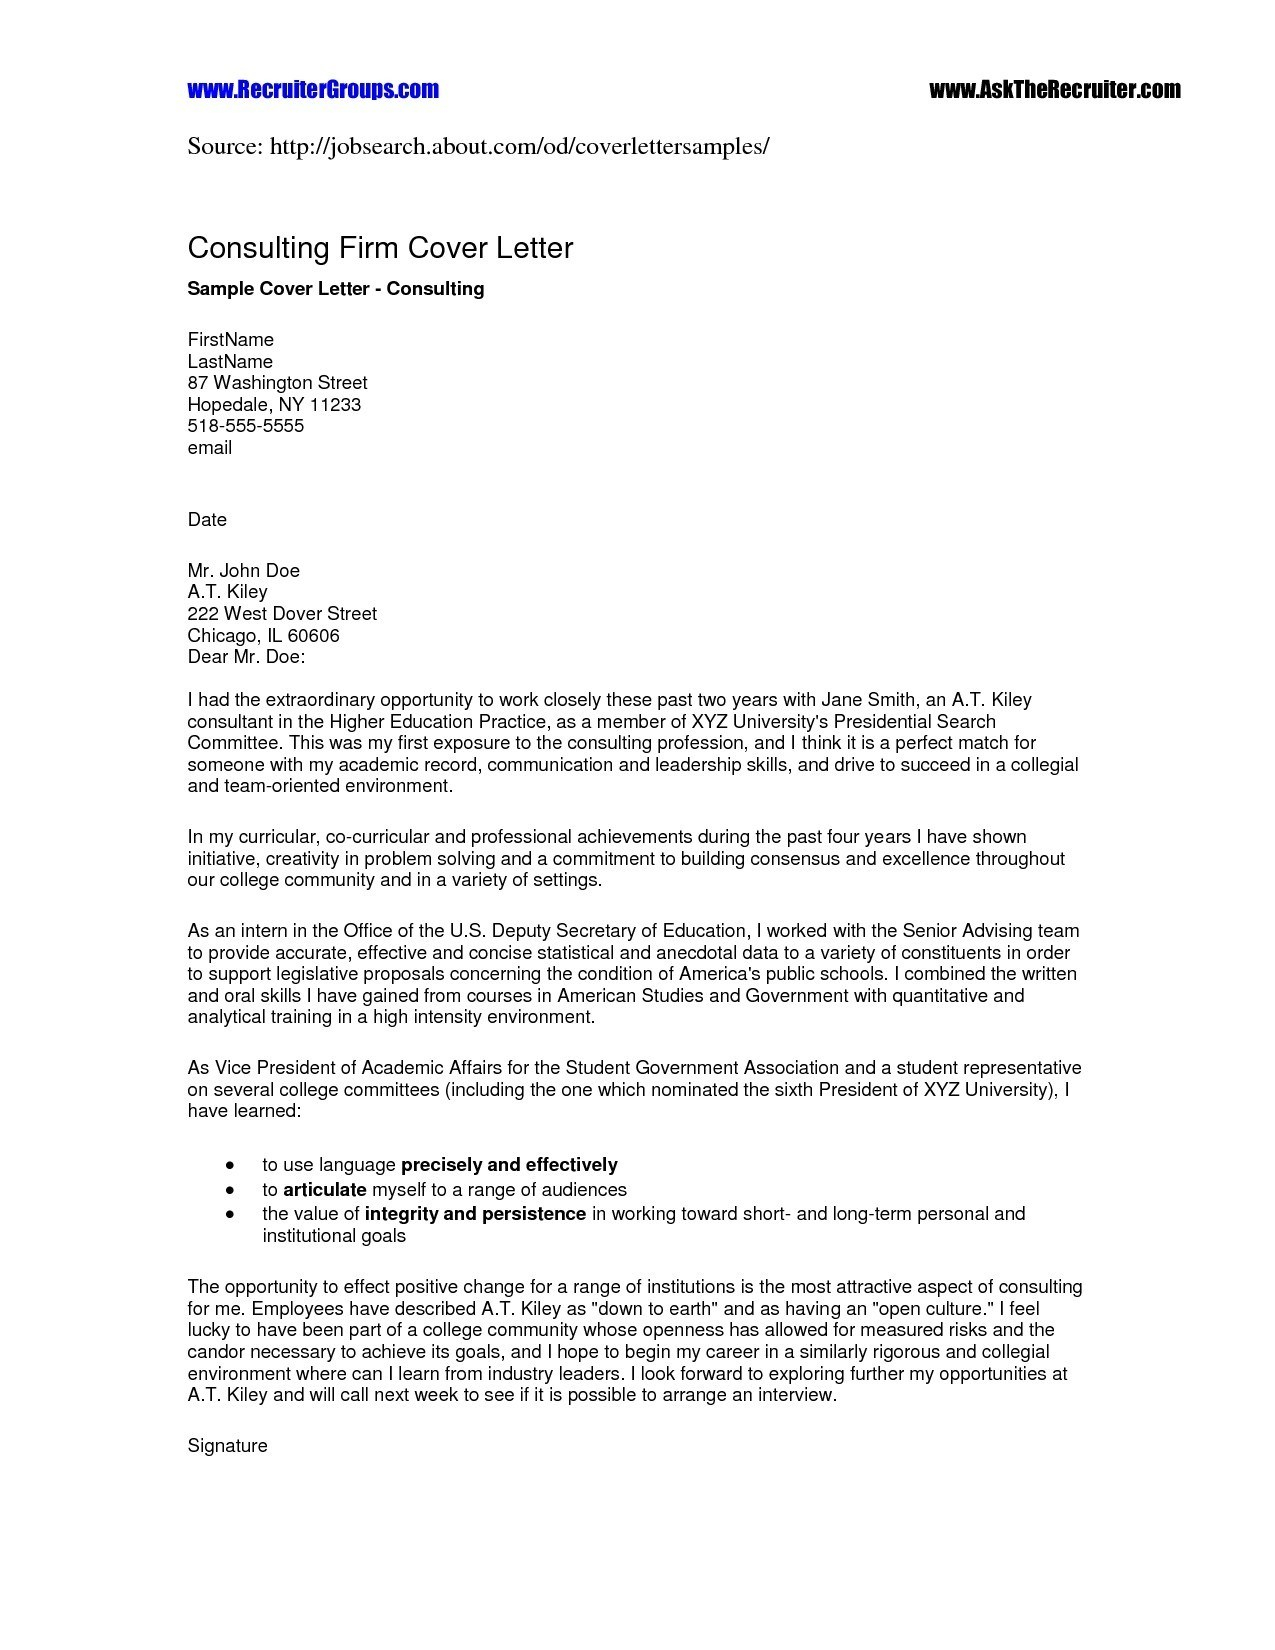 Debt Dispute Letter Template - Debt Collection Dispute Letter Unique Debt Collector Cover Letter